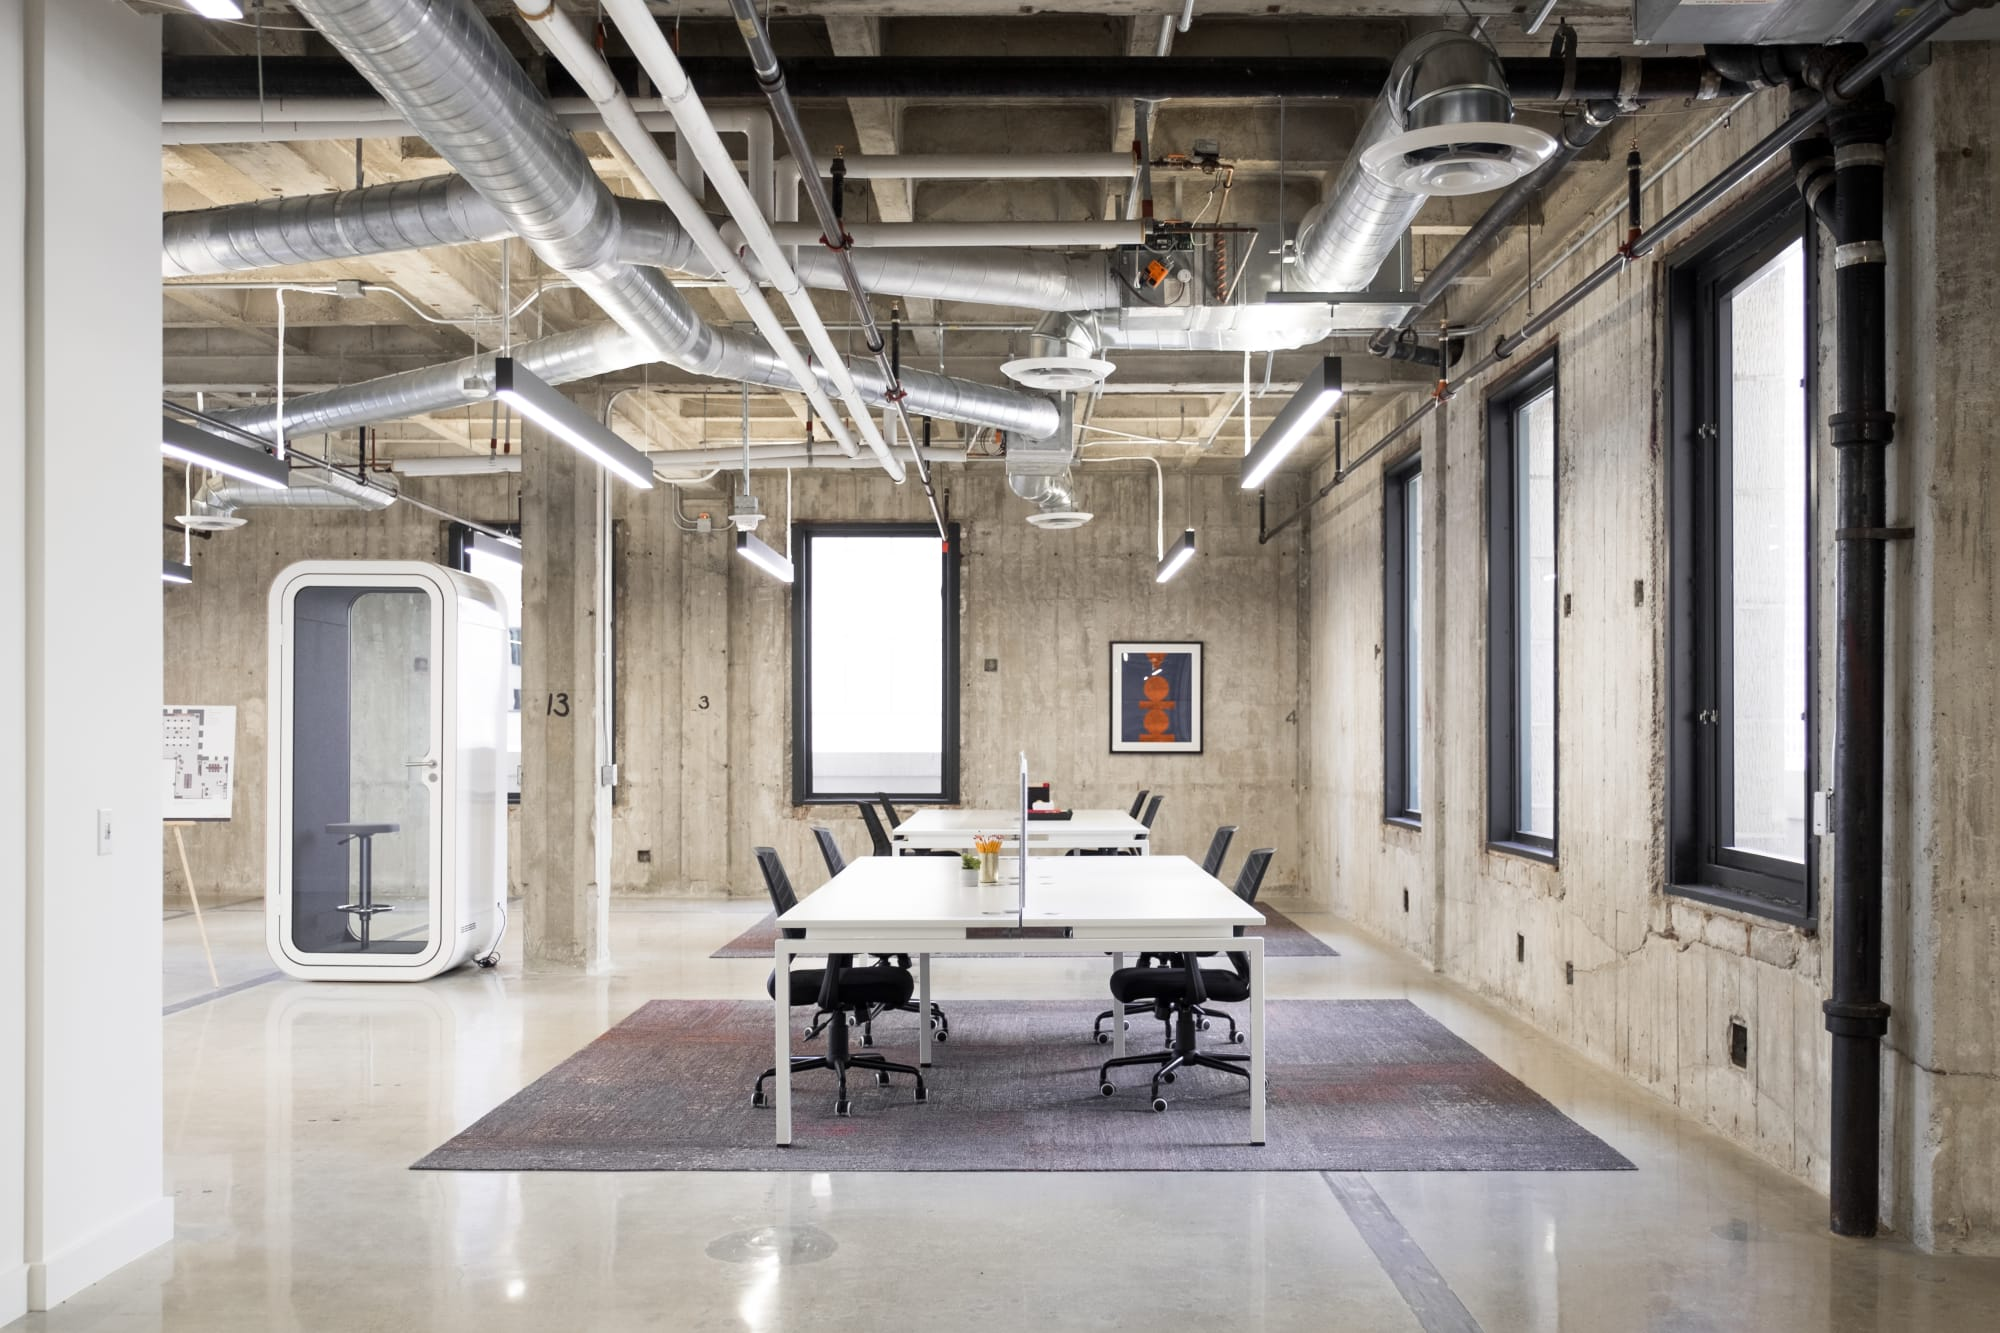 Interior Design by Omgivning at The CALEDISON DTLA, Los Angeles - The CalEdison DTLA